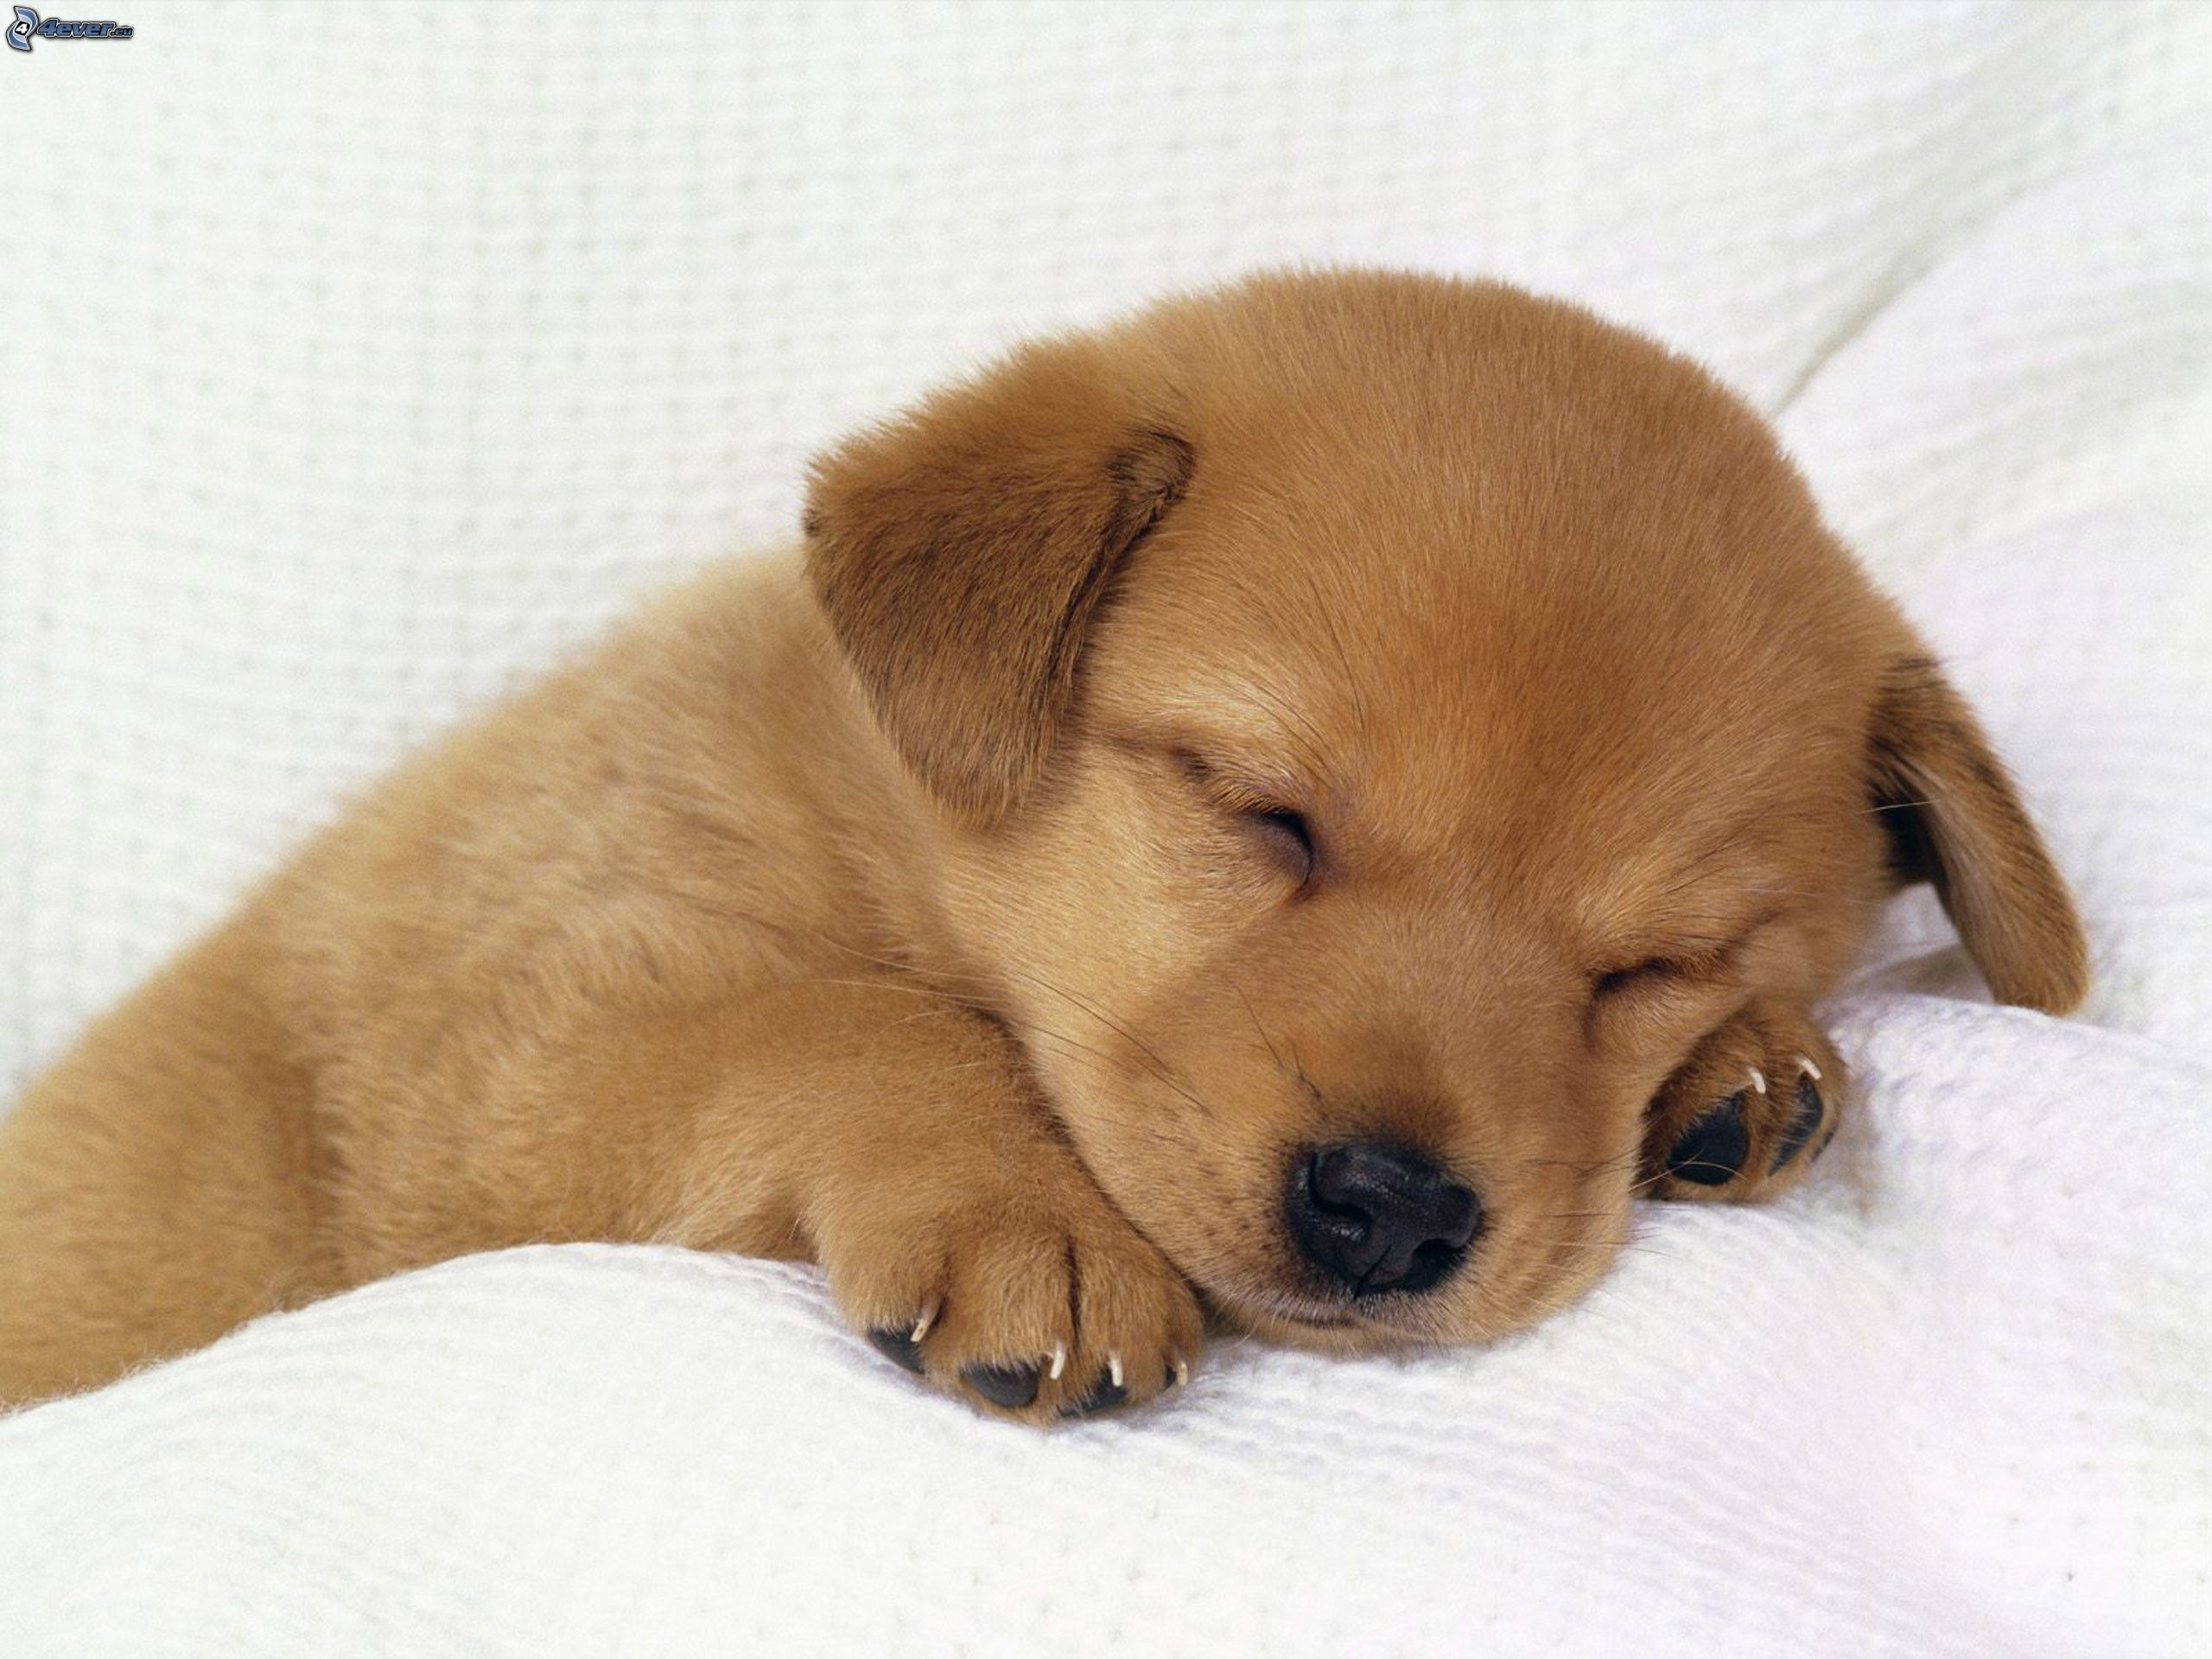 2560x1920 Cute Sleeping Golden Retriever Puppies